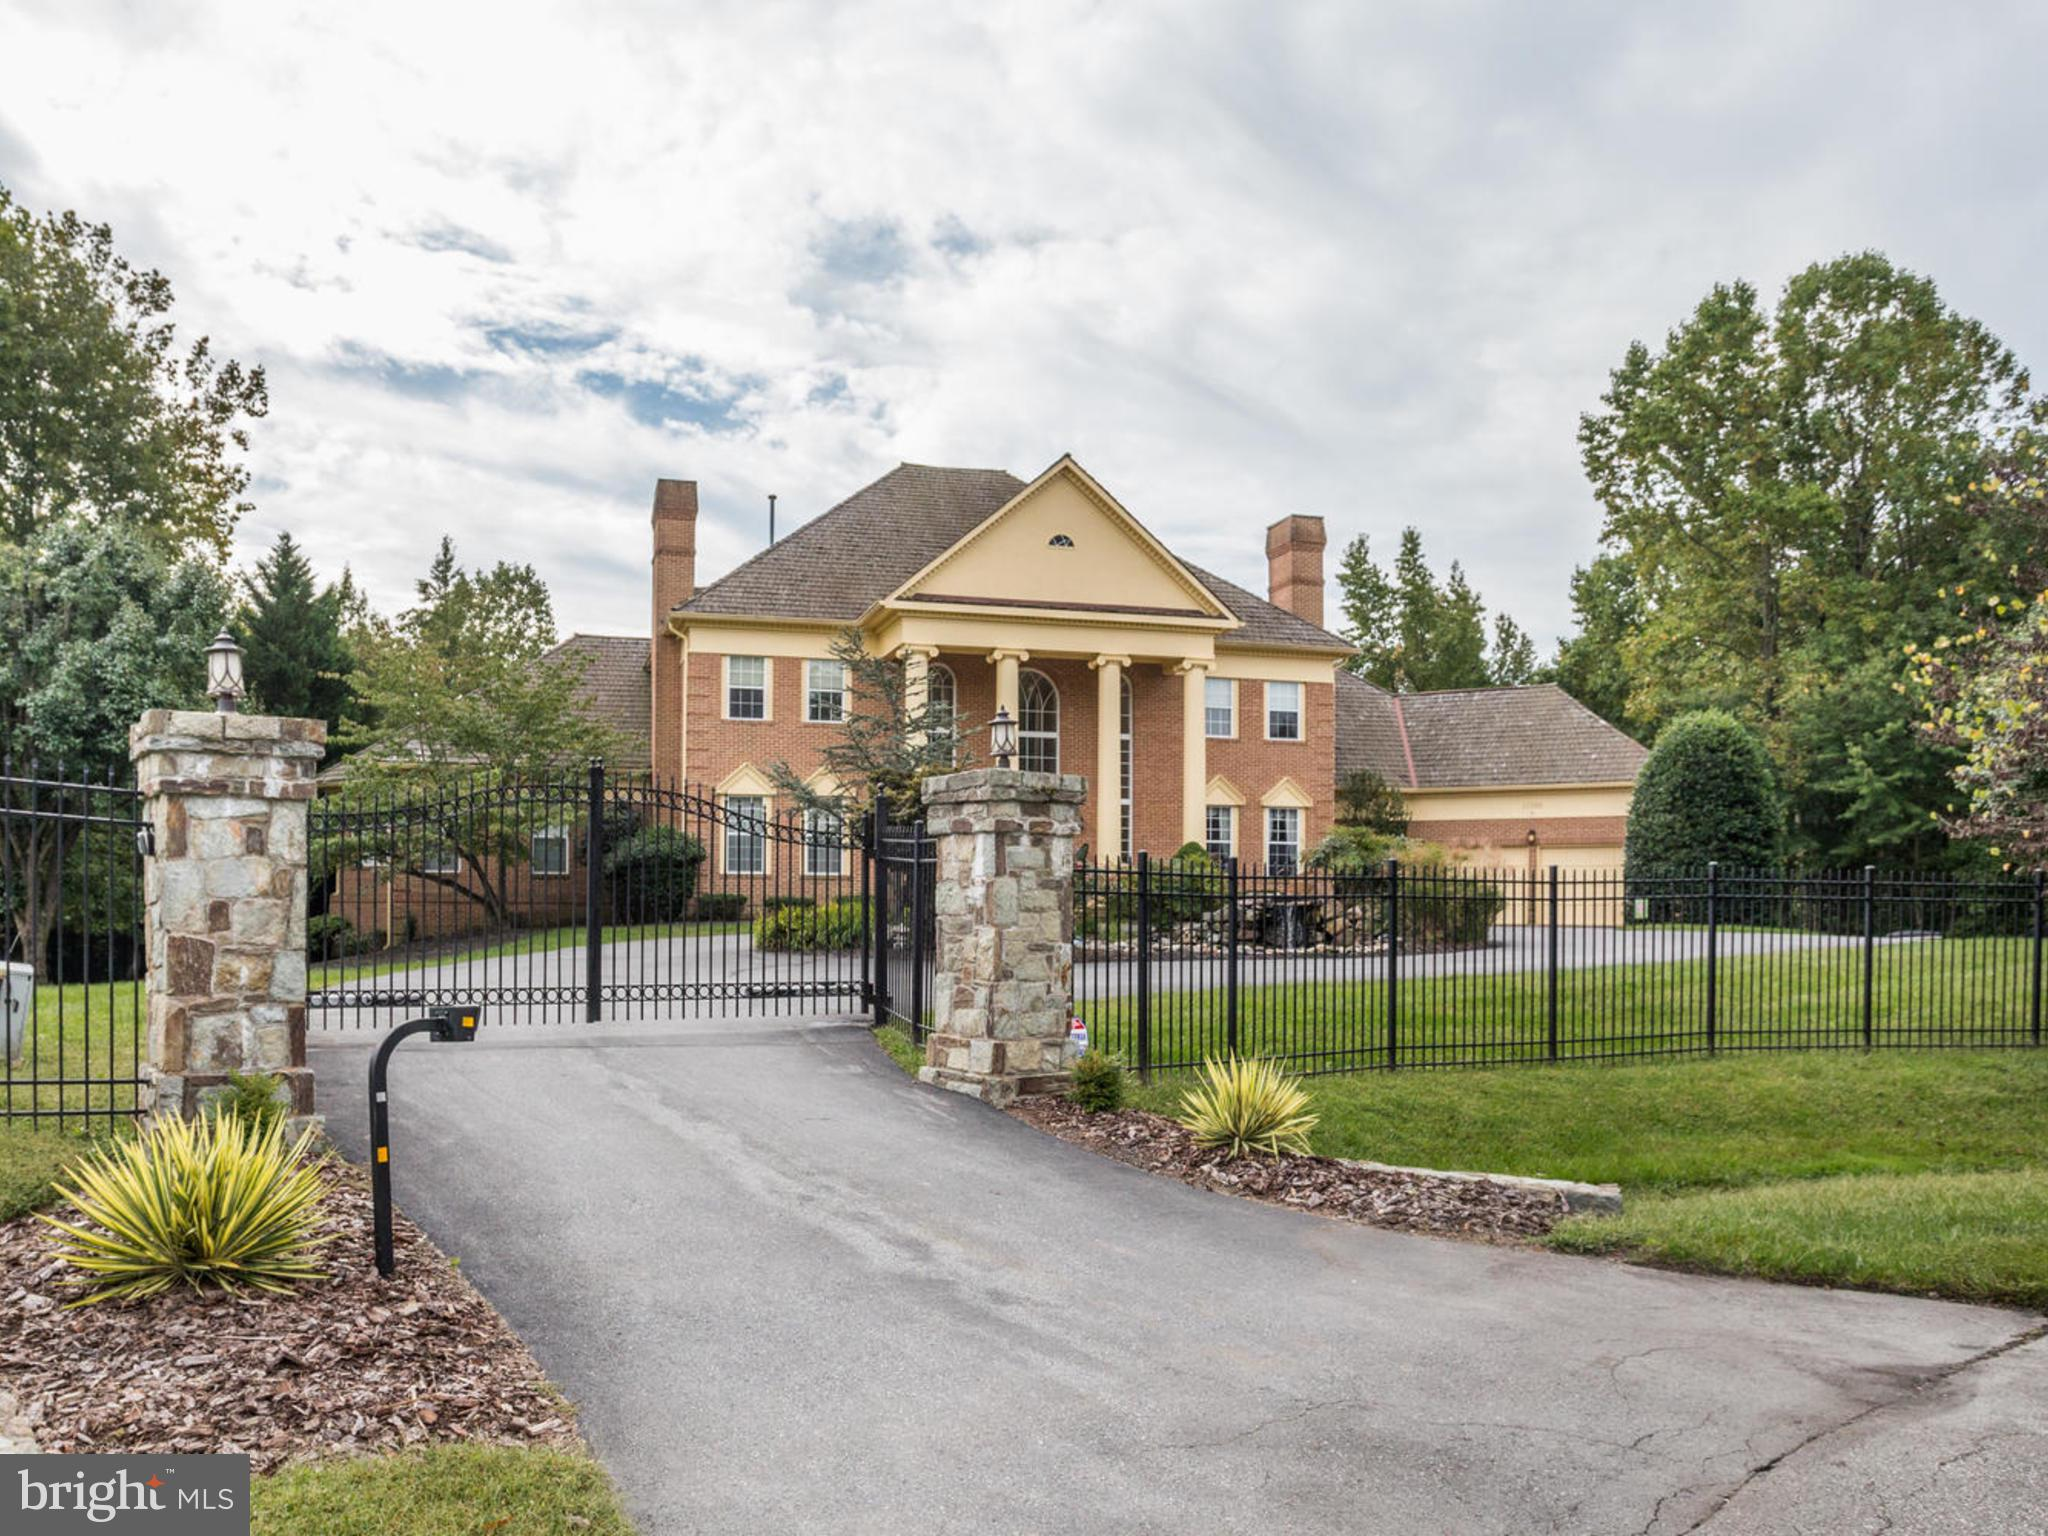 12303 LONGWATER DRIVE, BOWIE, MD 20721